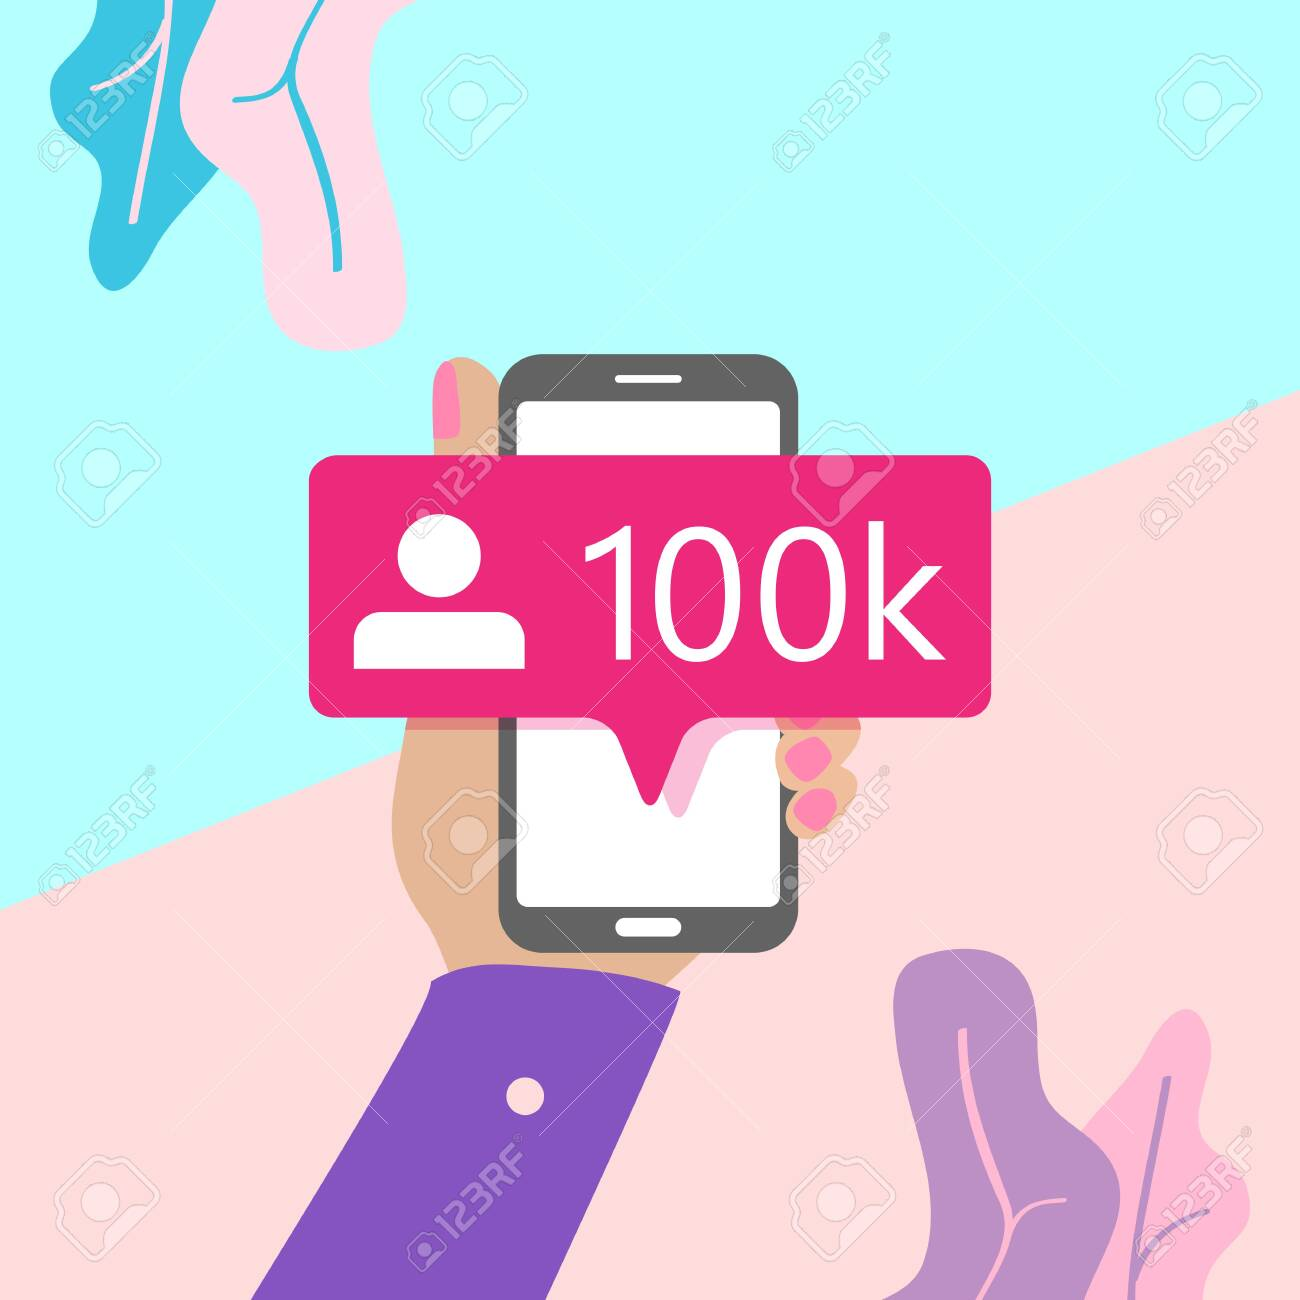 flat lay modern minimal hand holding mobile phone with new pink ten chiliad like followers social media iconon screen with shadow on pastel colored blue and pink background. Pink bubble icon set for websites, blog, mobile interfaces - 151498951